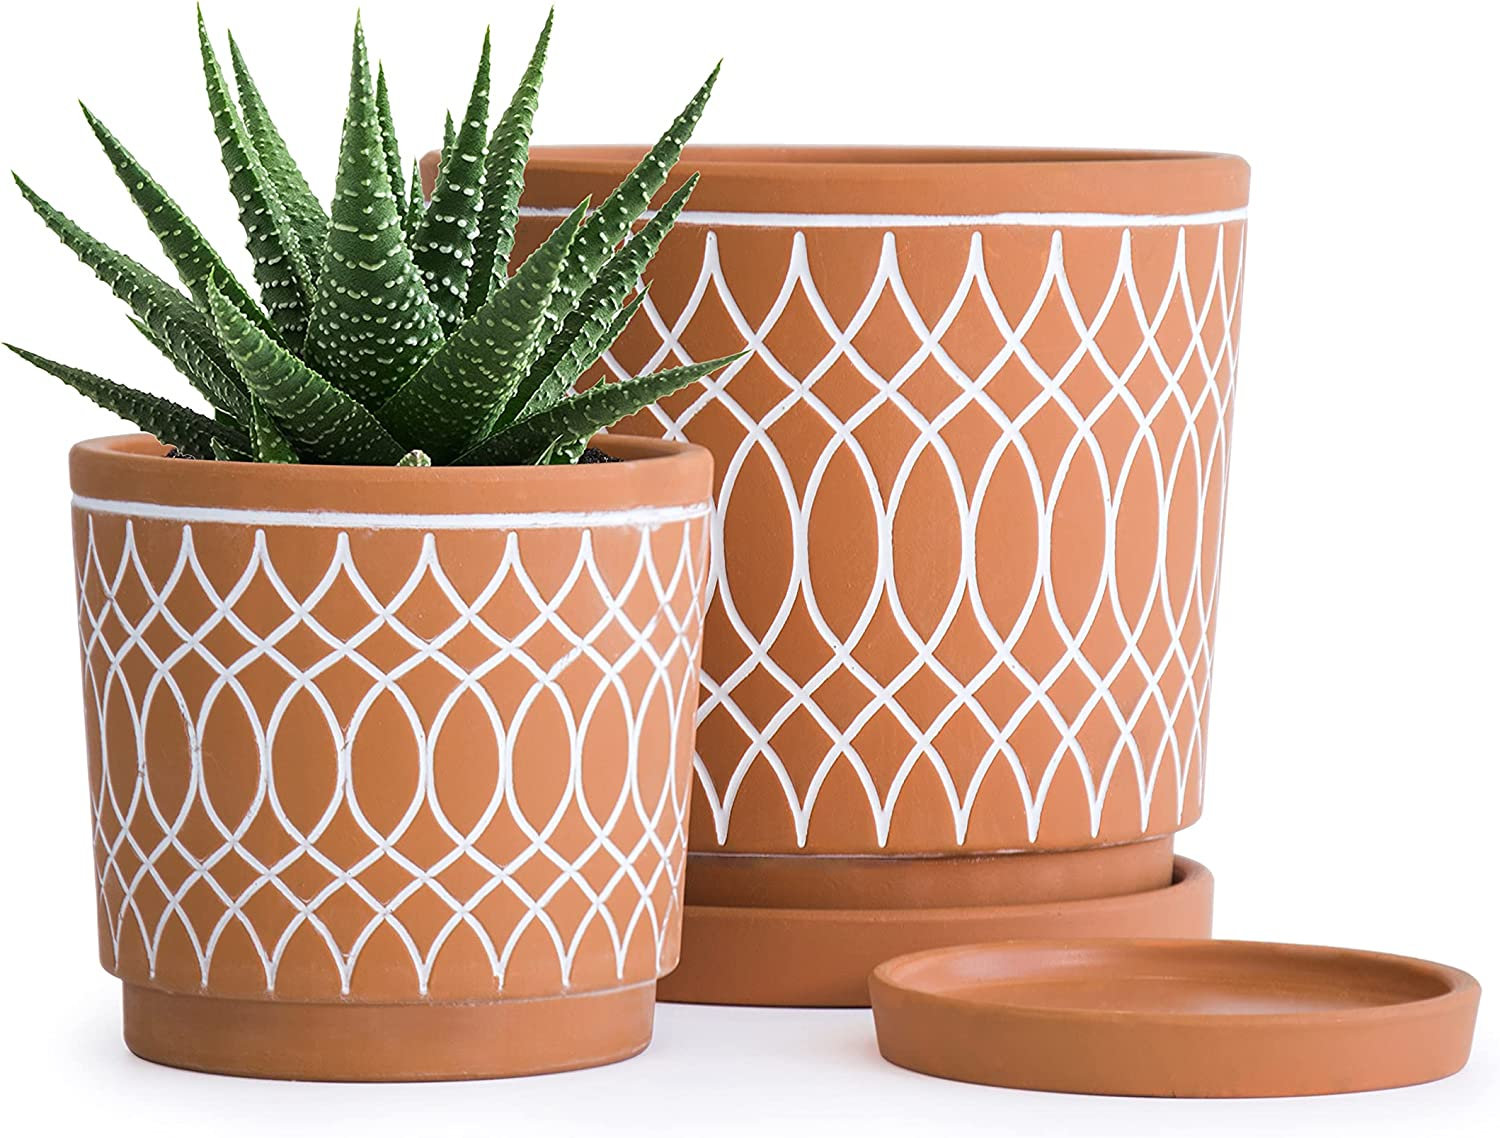 Topics on TV Set Long-awaited of 2 Terracotta Plant pots Design Pattern Line and 4 Inch